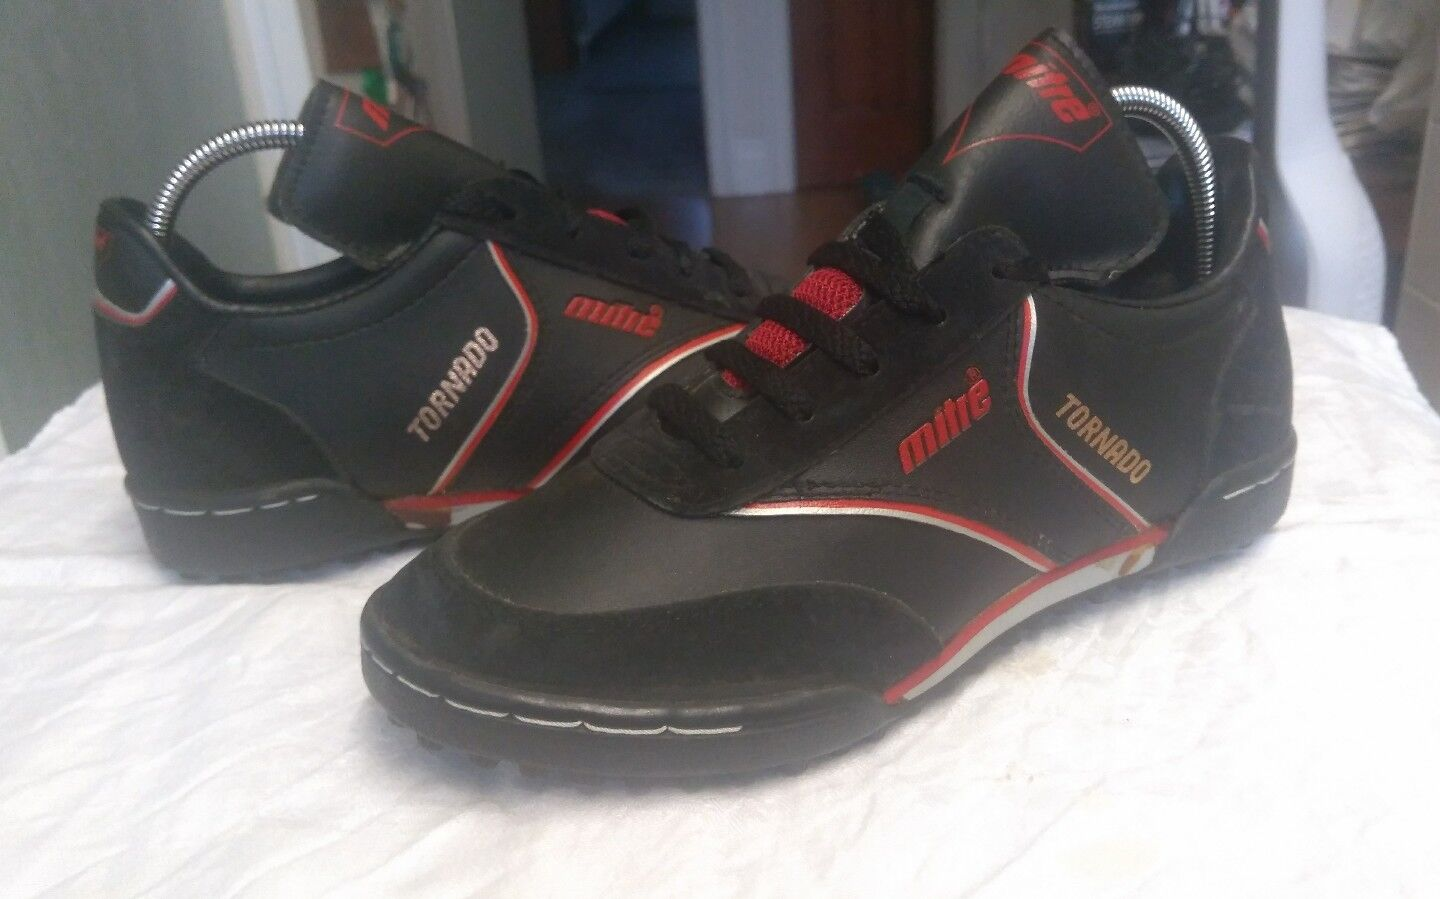 Vintage Mitre Tornado Astro Turf Trainers UK Size 5 Deadstock - Rare - 1980's